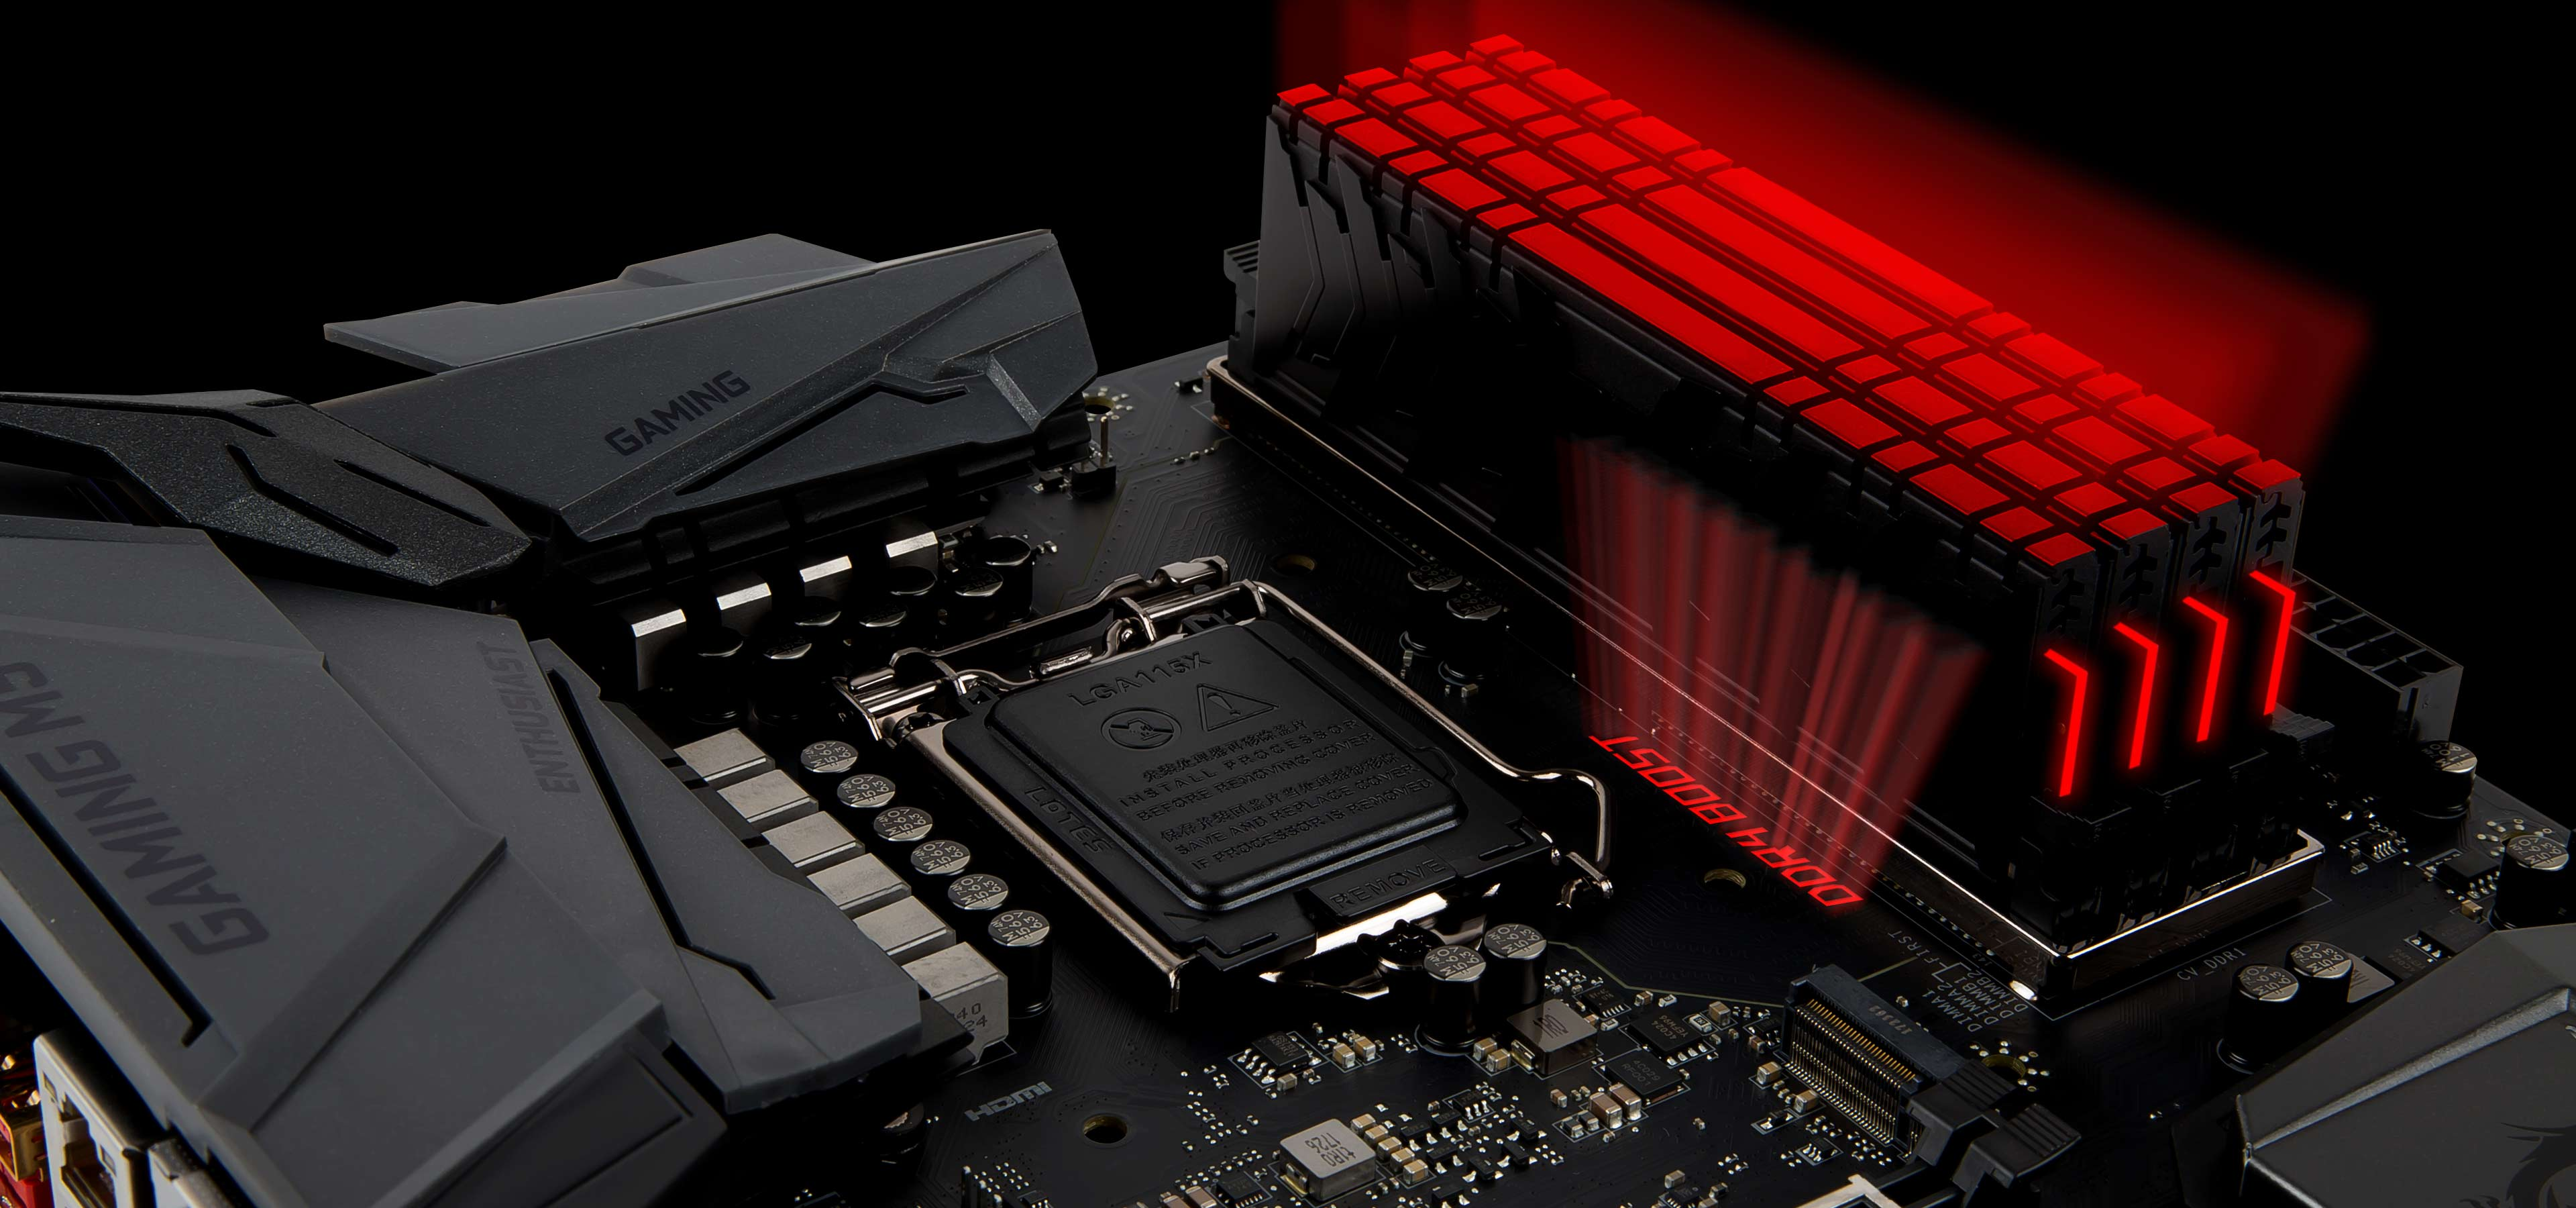 Z370 GAMING M5 | Motherboard - The world leader in motherboard